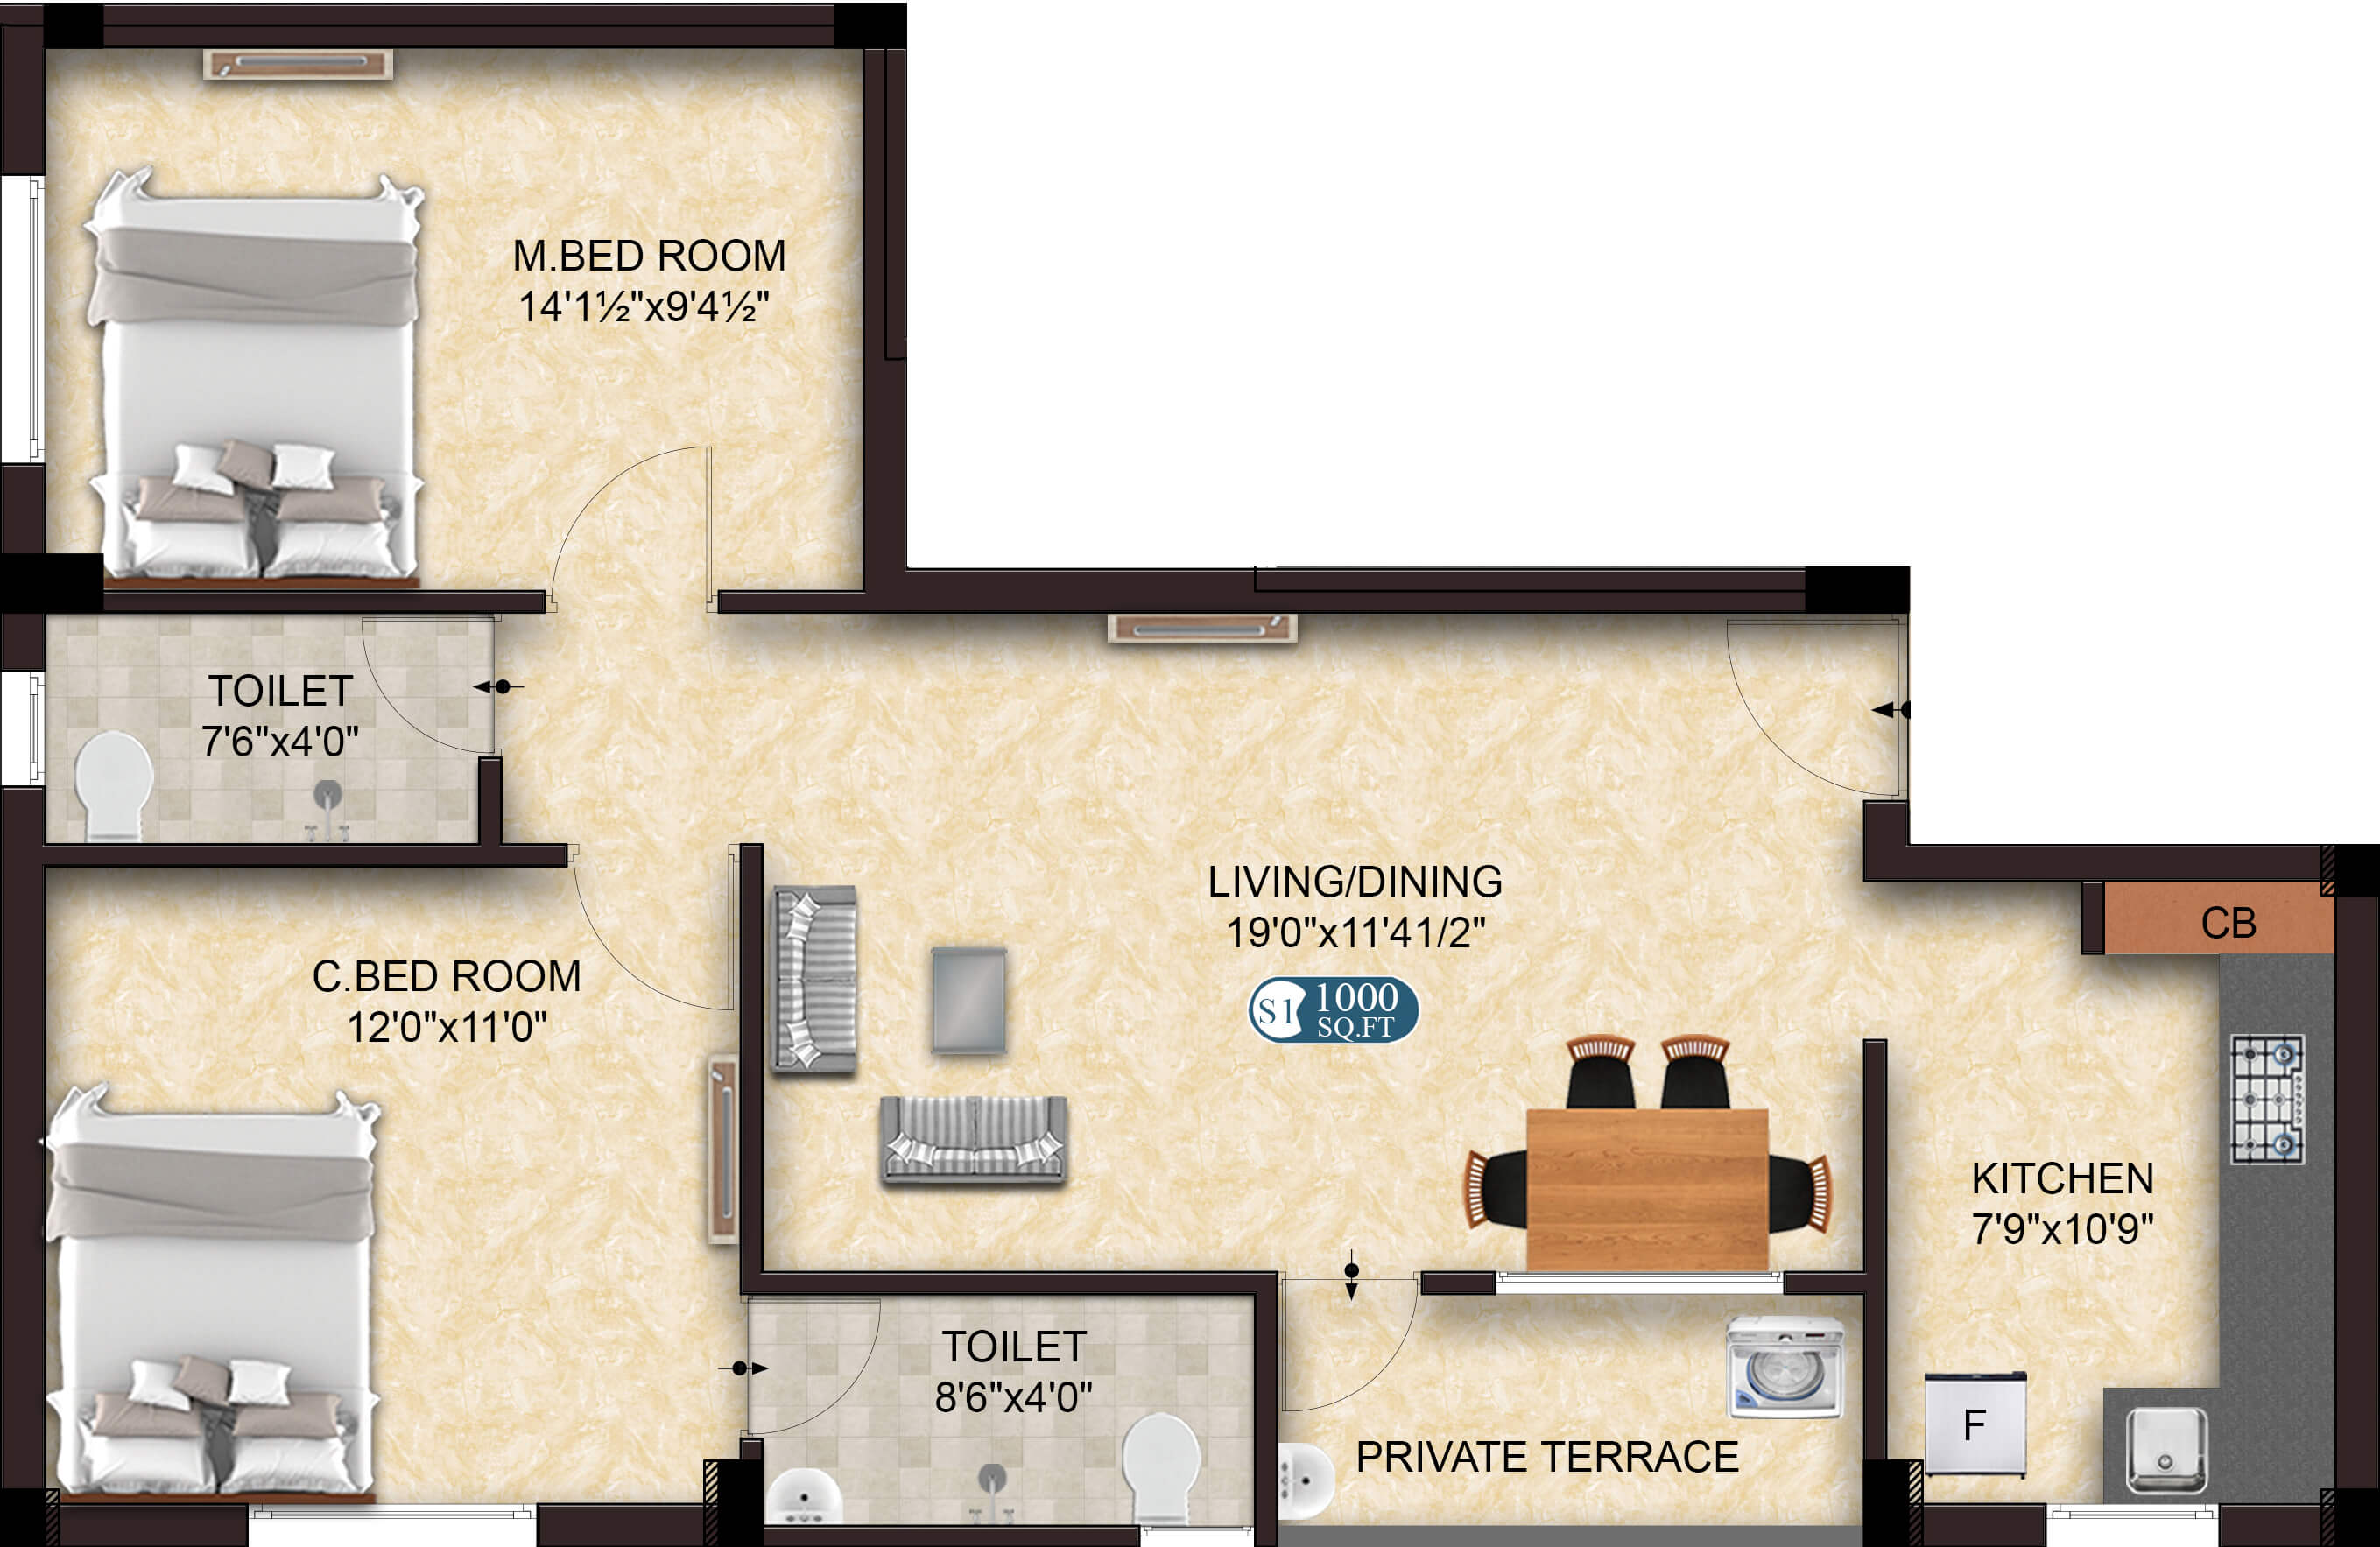 Glow S1 2BHK 1000 - Apartments/Flats for Sale in Sholinganallur